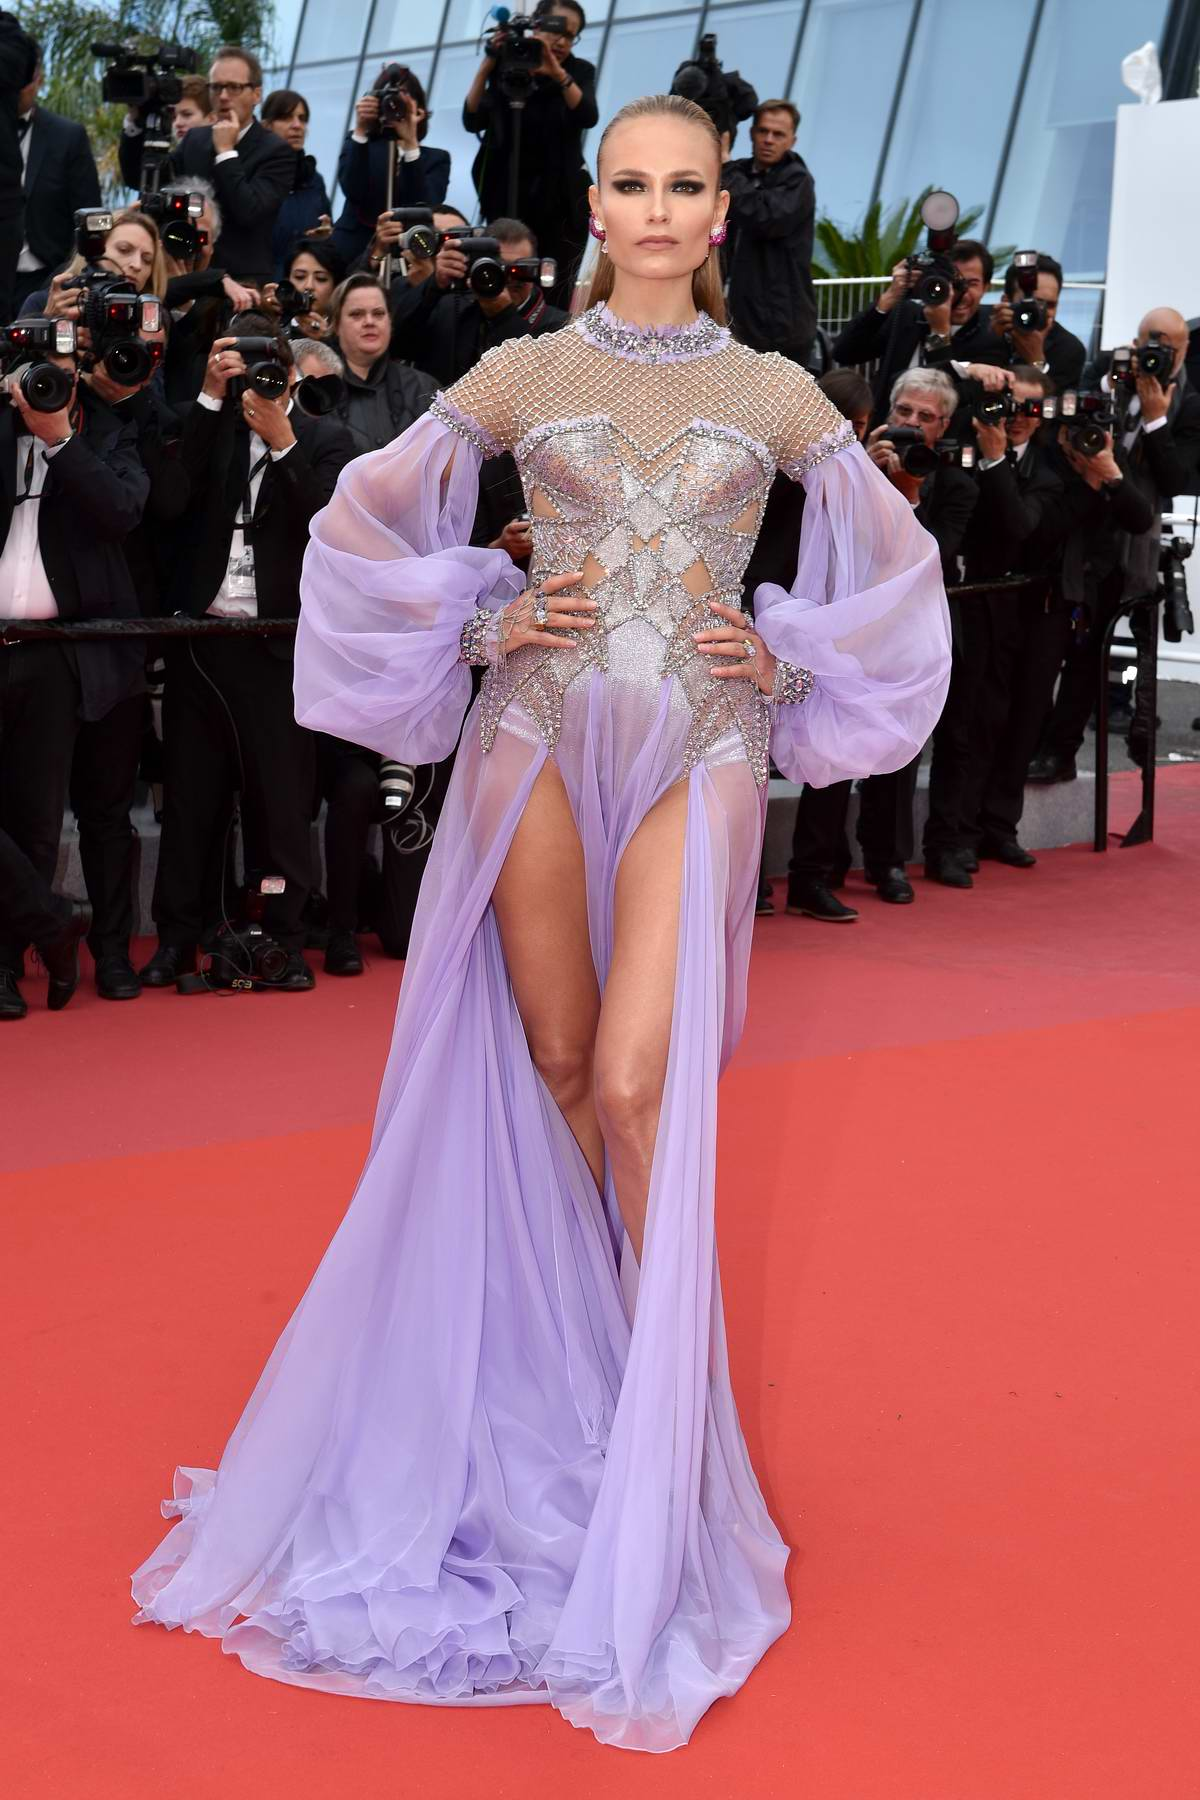 Natasha Poly attends the 'BlacKkKlansman' premiere during 71st Cannes Film Festival in Cannes, France